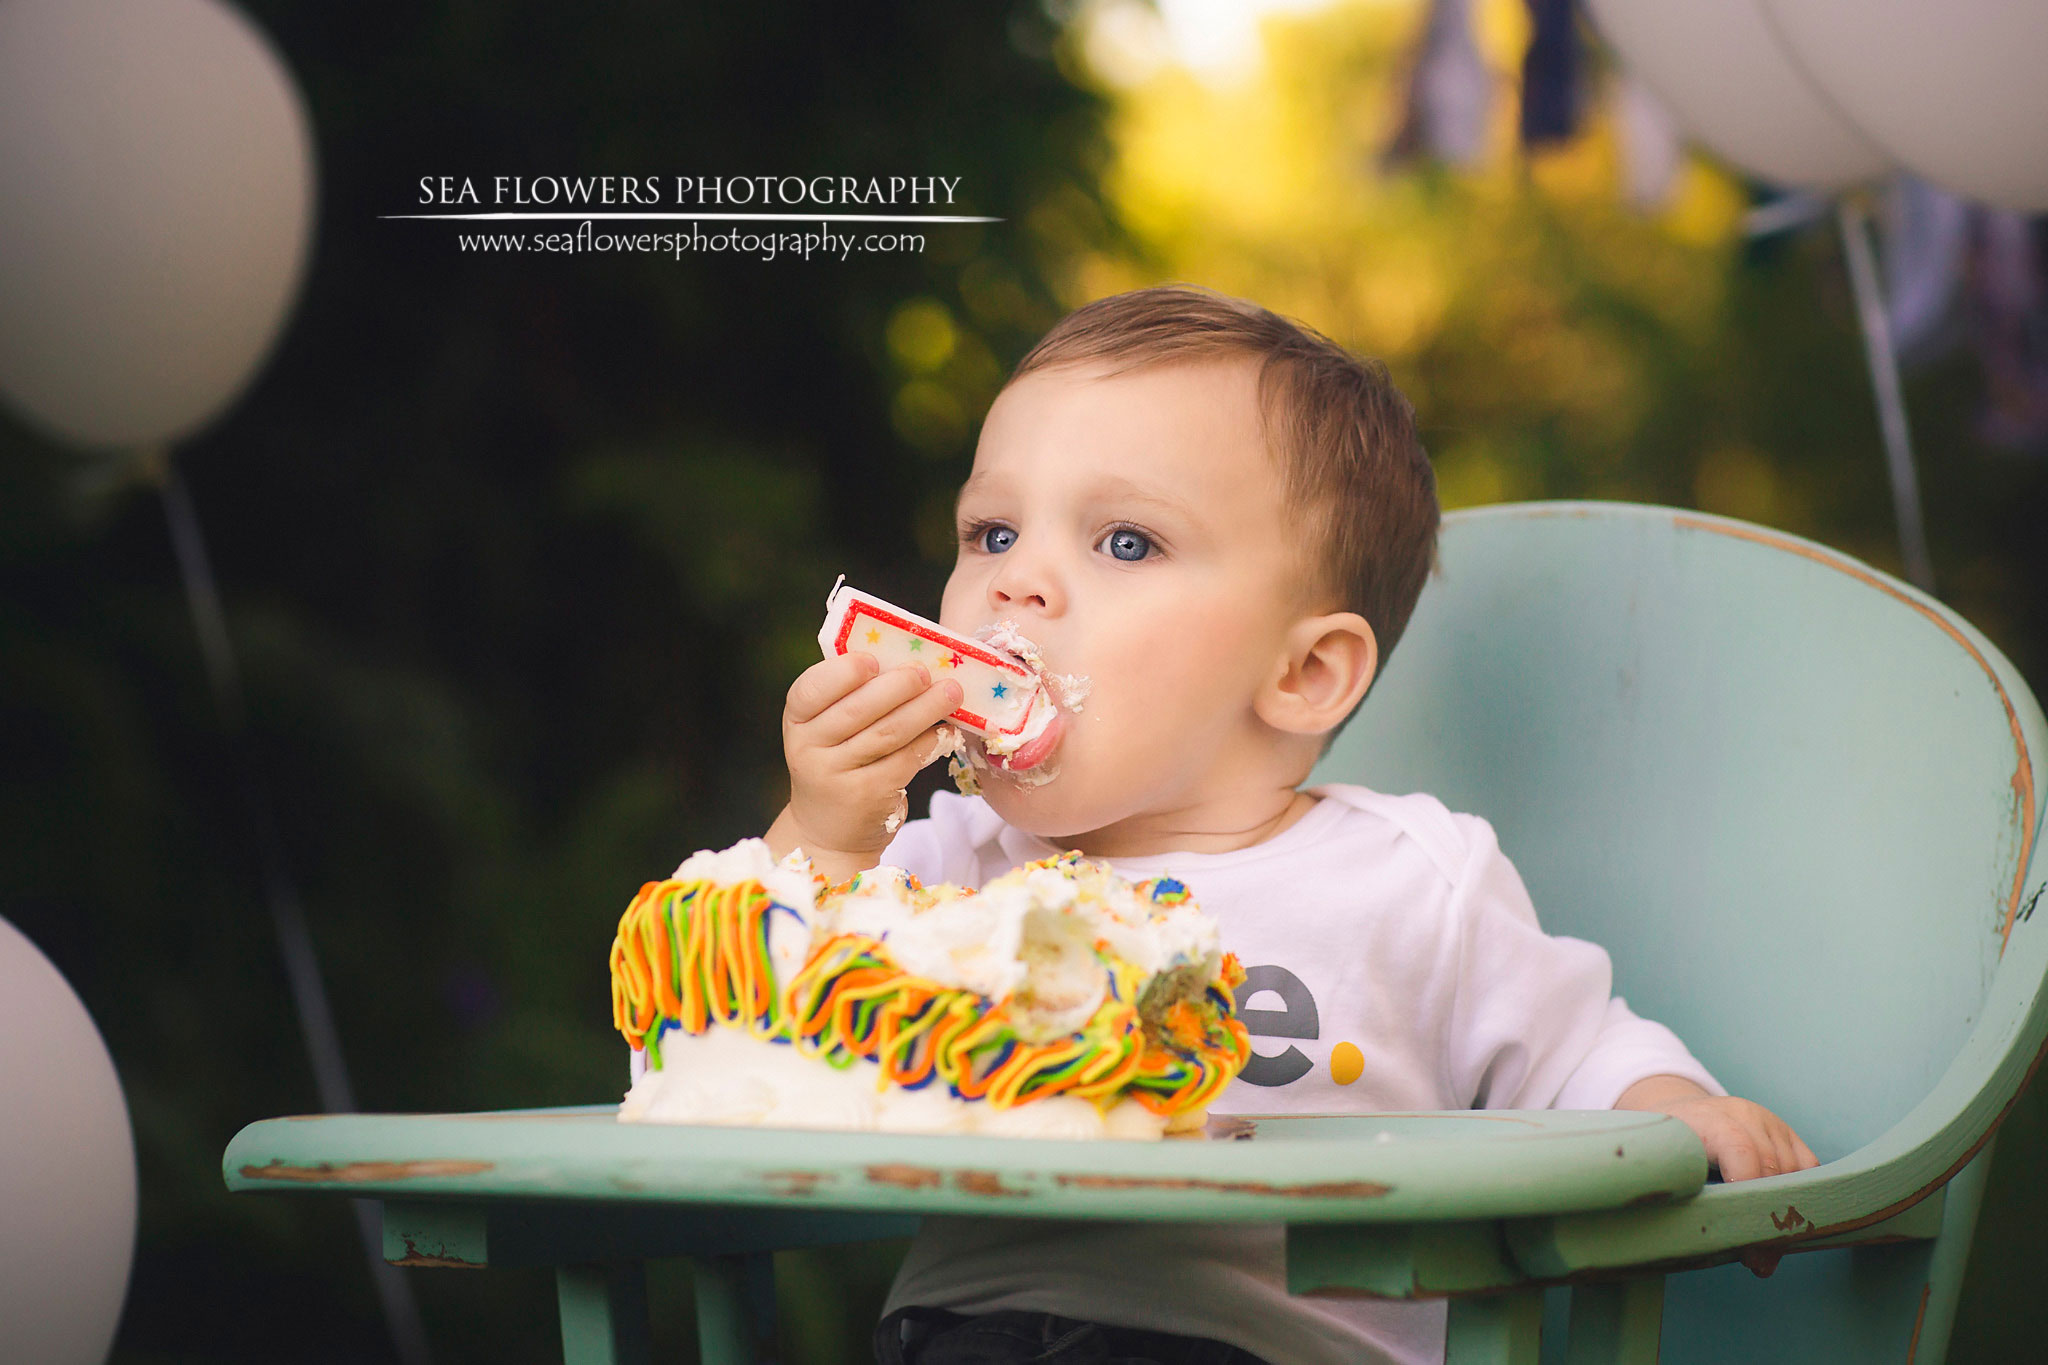 Jupiter Florida Cake Smash First Birtday and Family Session - Sea Flowers Photography